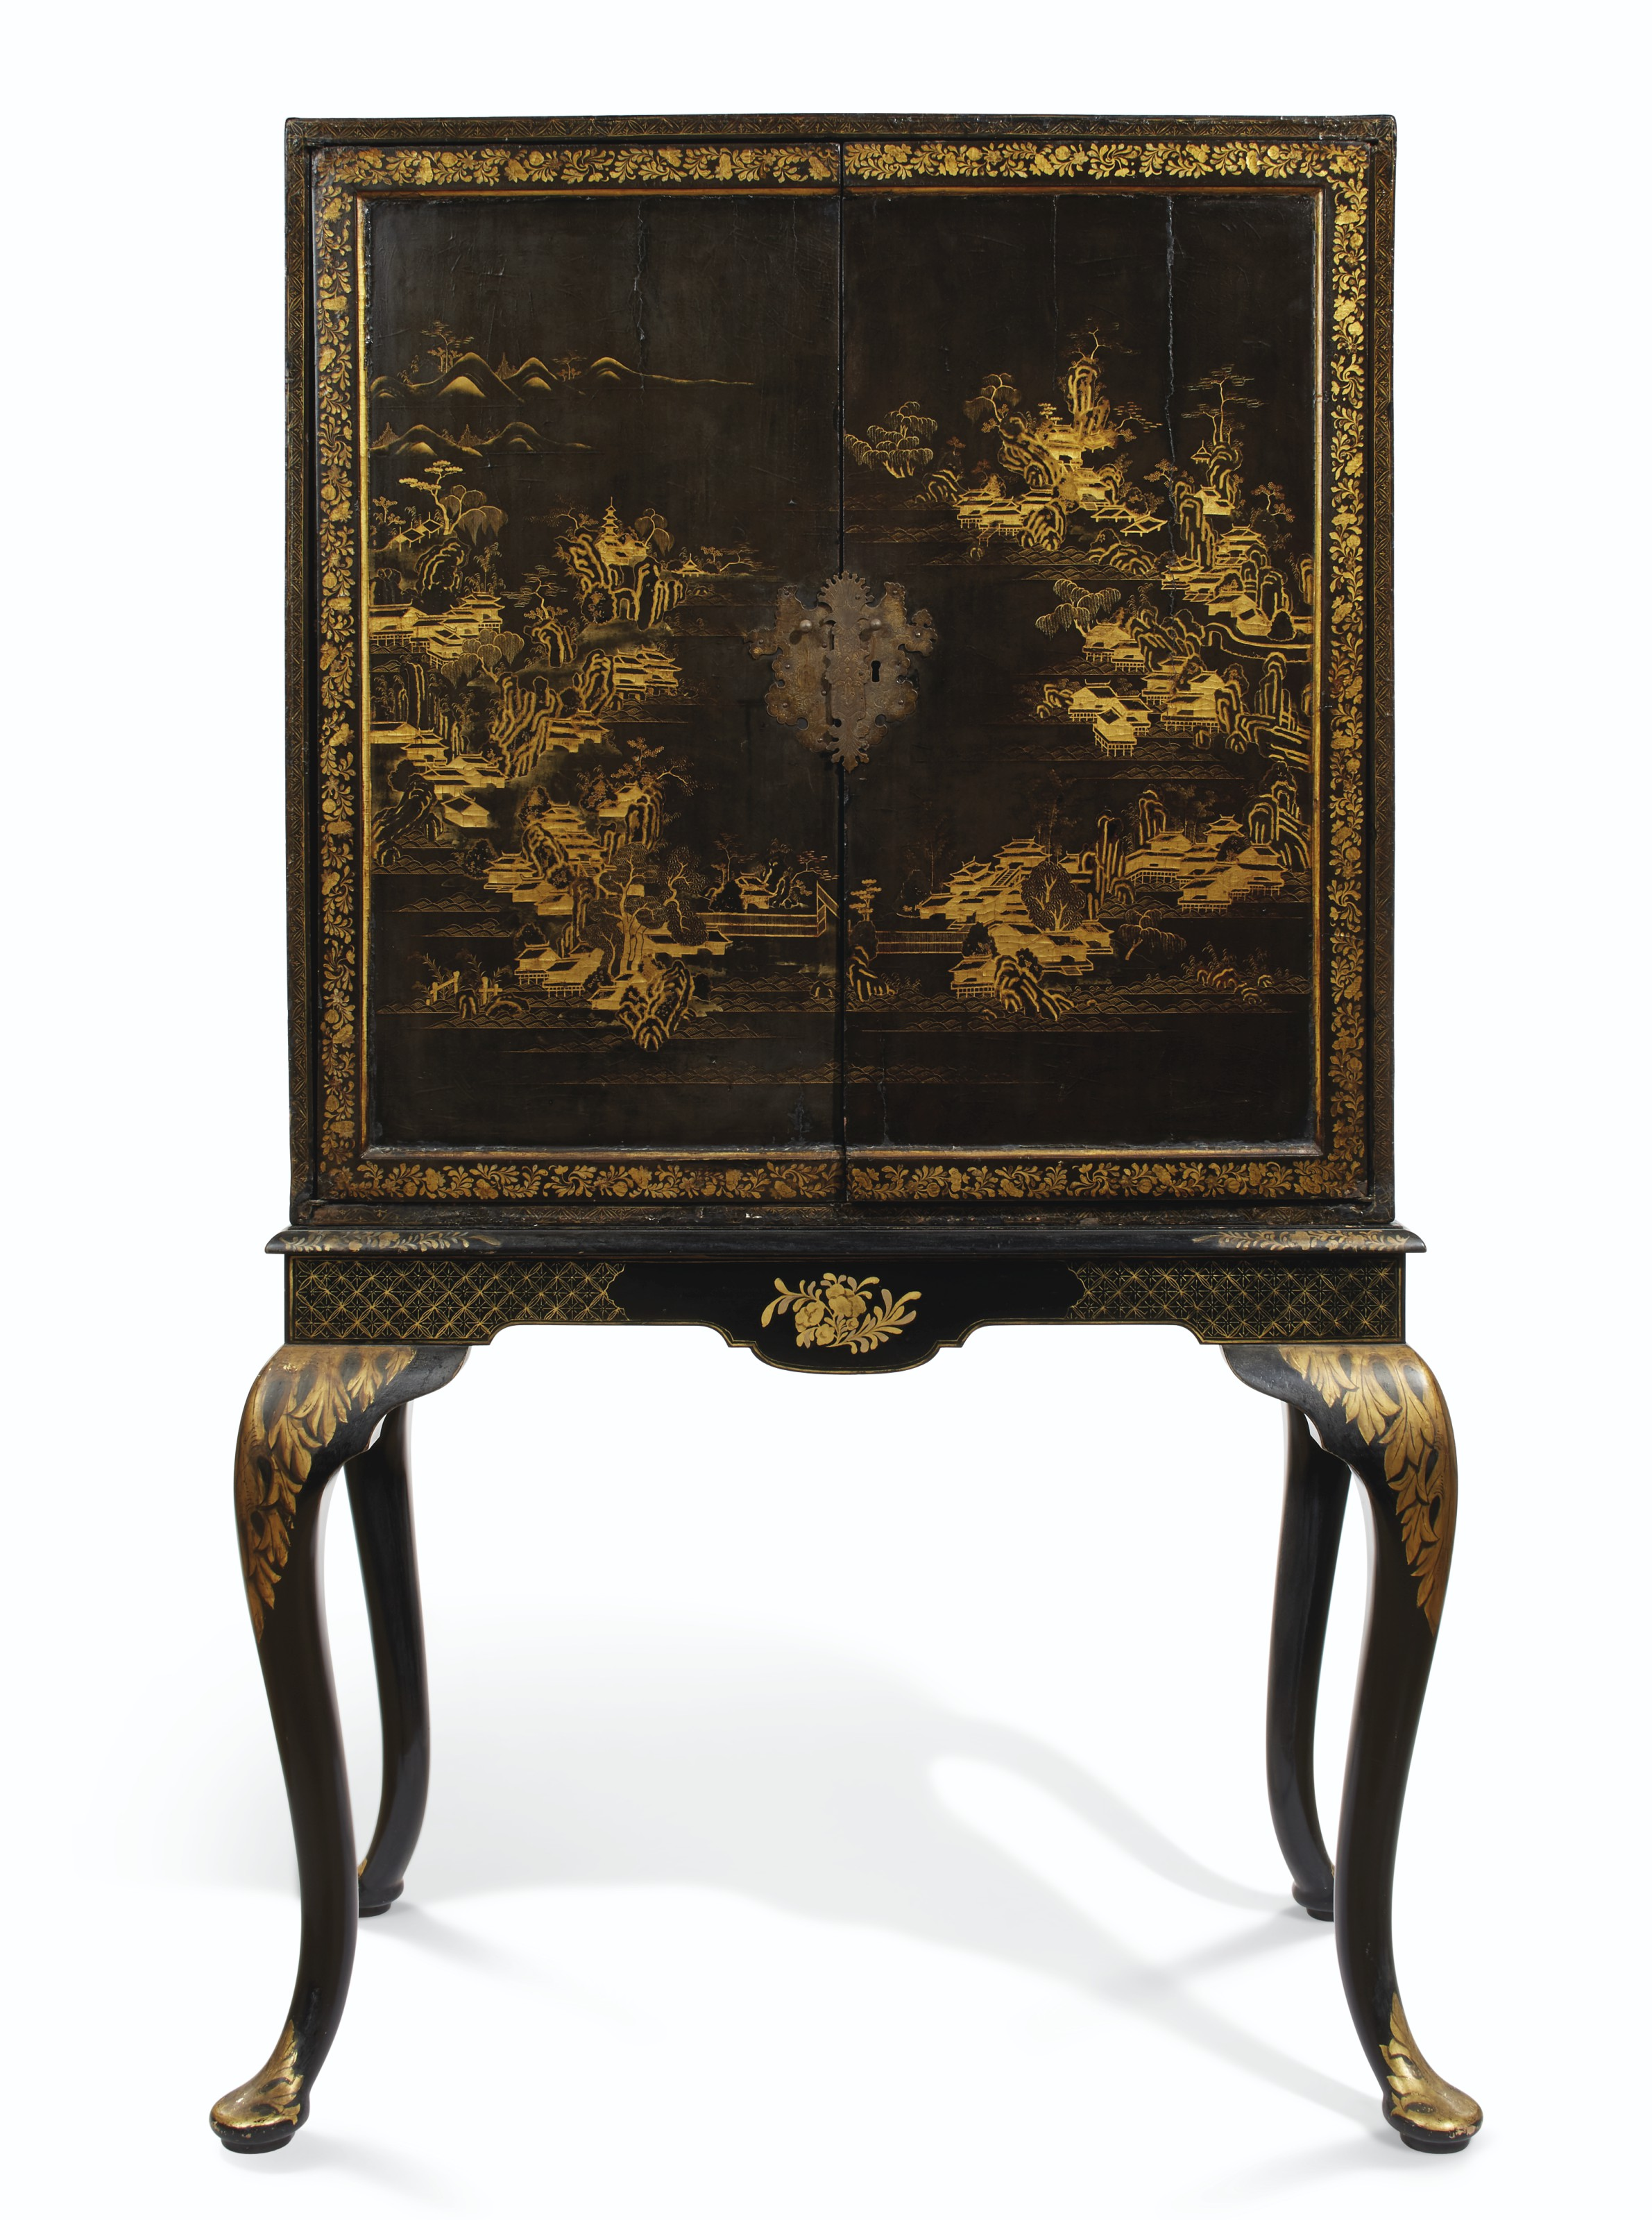 A CHINESE EXPORT BLACK AND GILT-LACQUER CABINET ON STAND